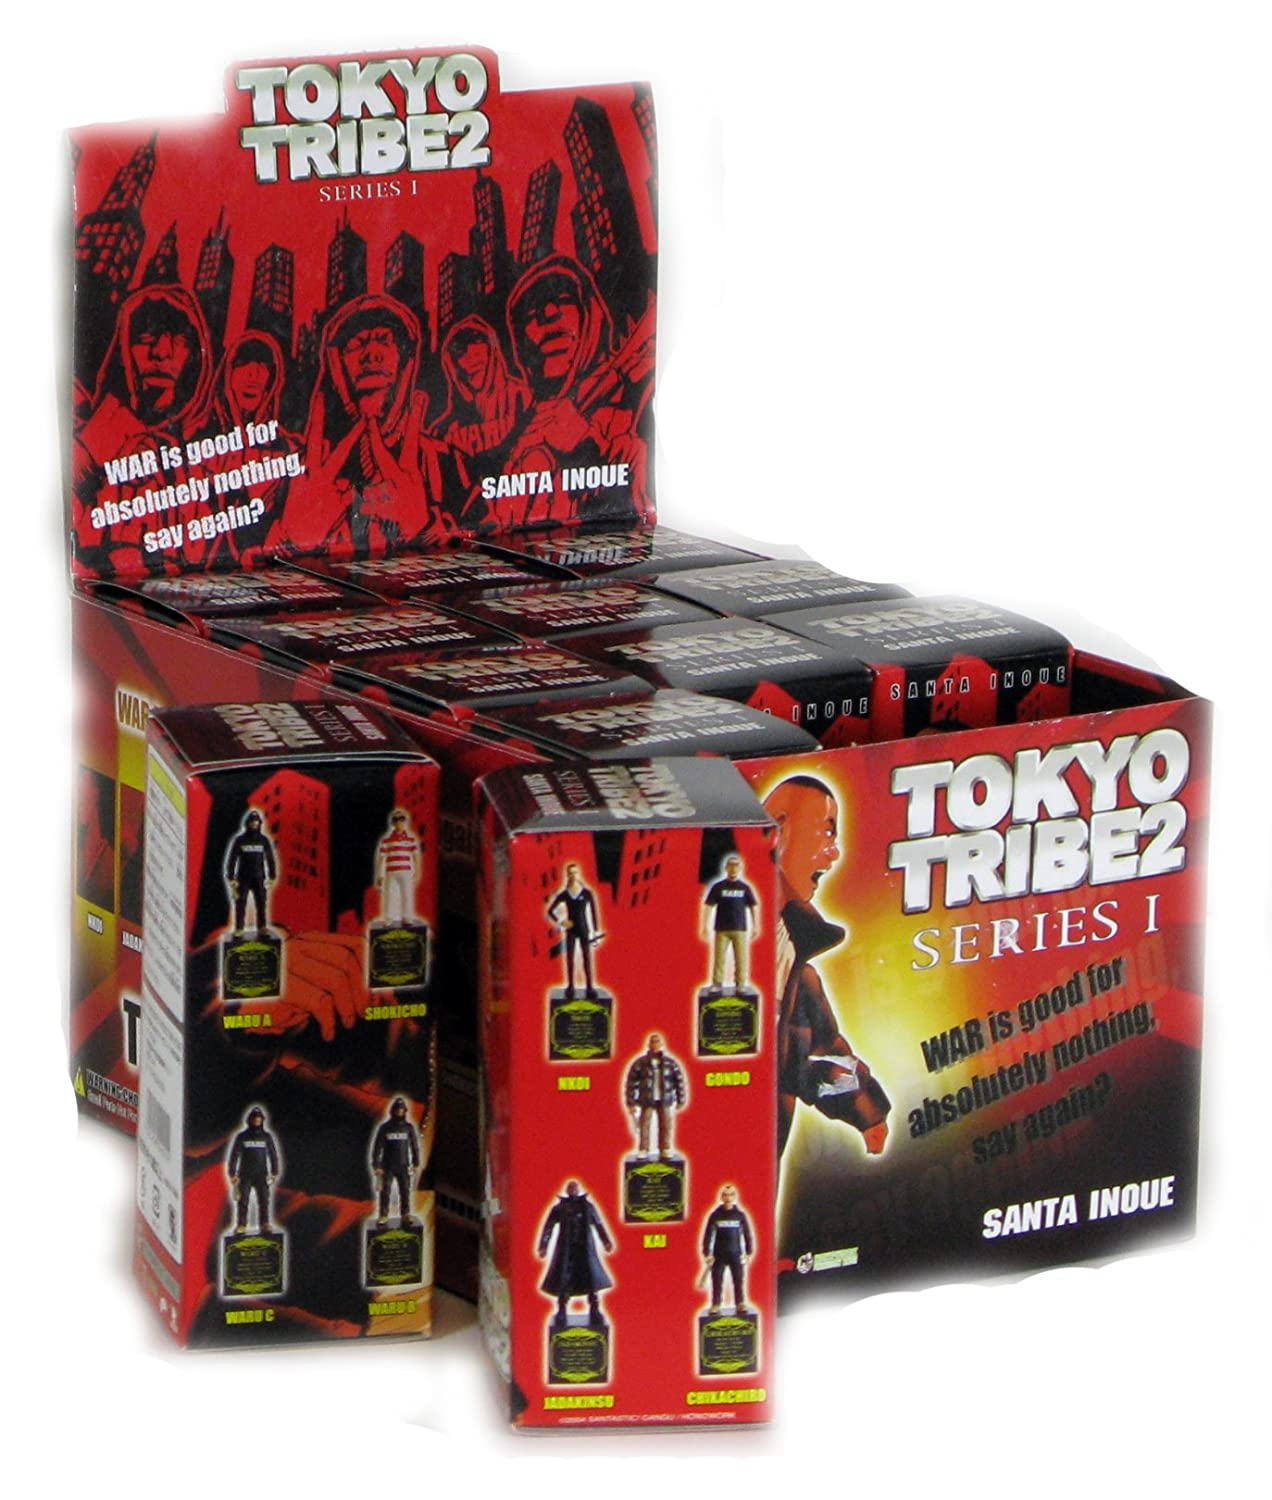 Tokyo Tribe 2 Figure Collection Limited Edition all nine sets